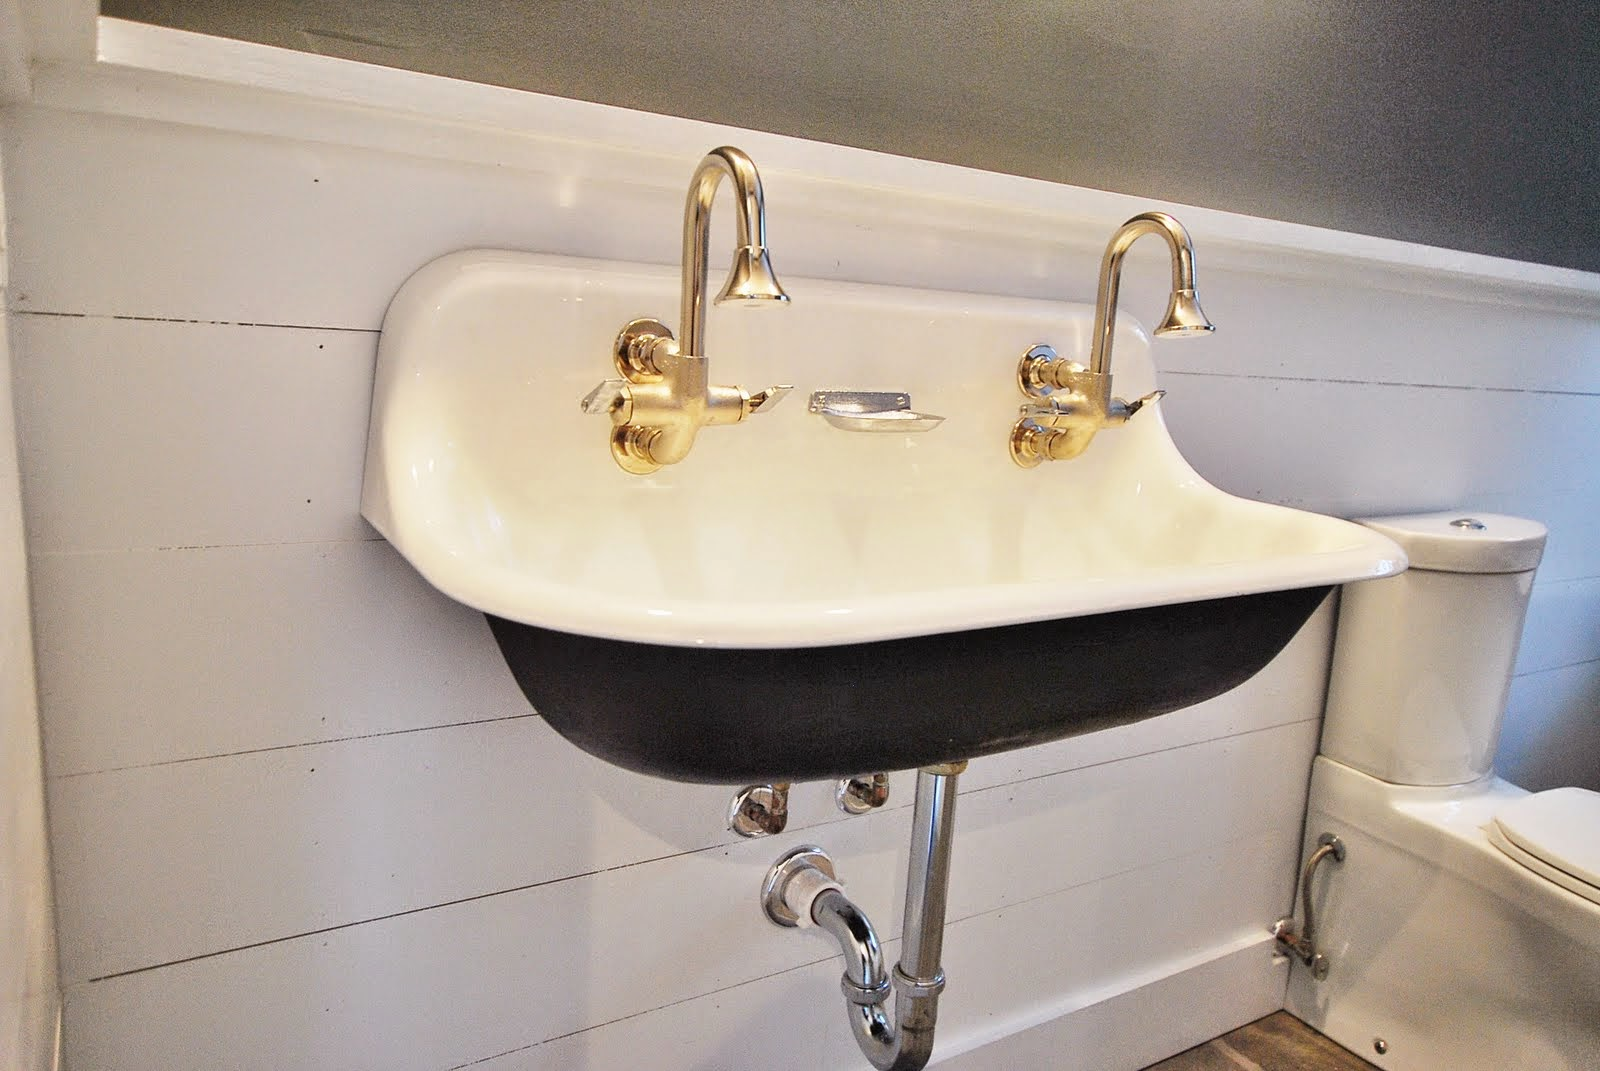 School Bathroom Sinks : old fashioned sink old fashioned sink old fashioned sink